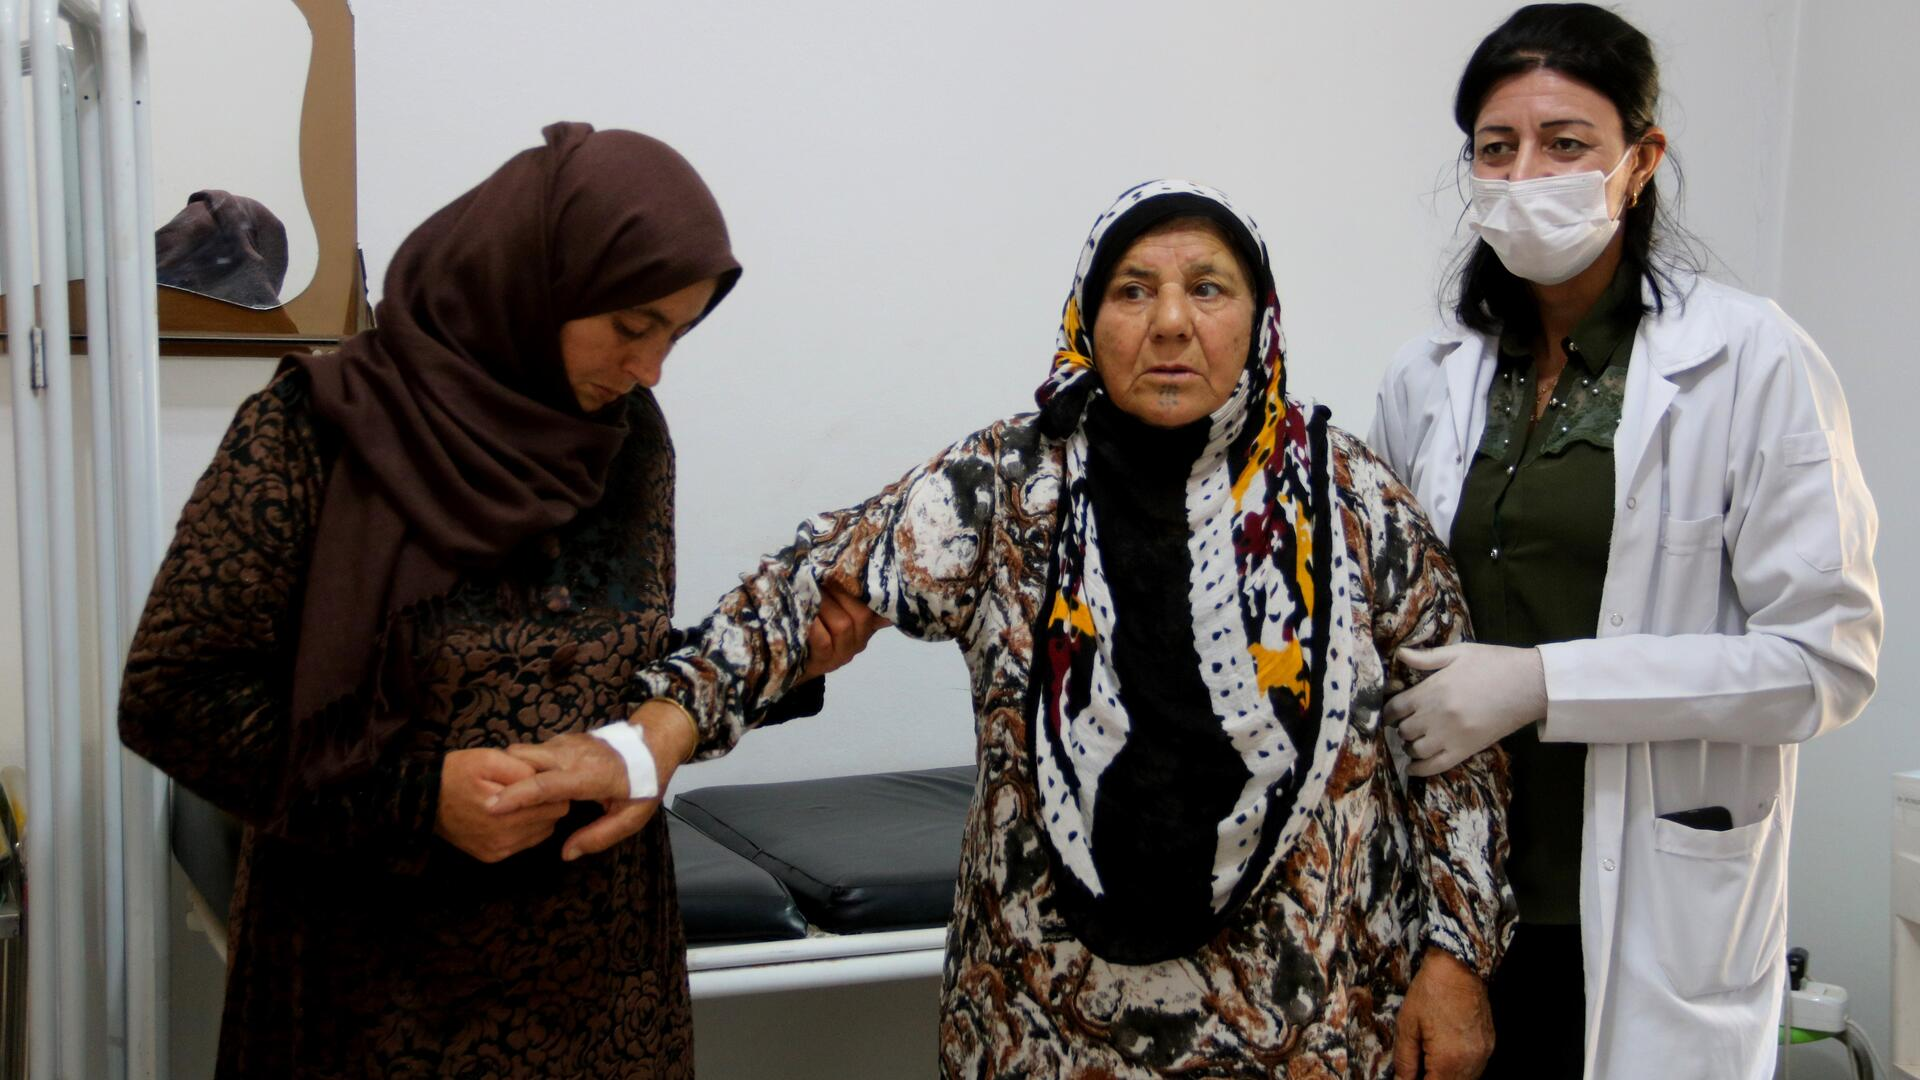 An elderly woman is assisted by a doctor and a relative in a health facility in Syria.